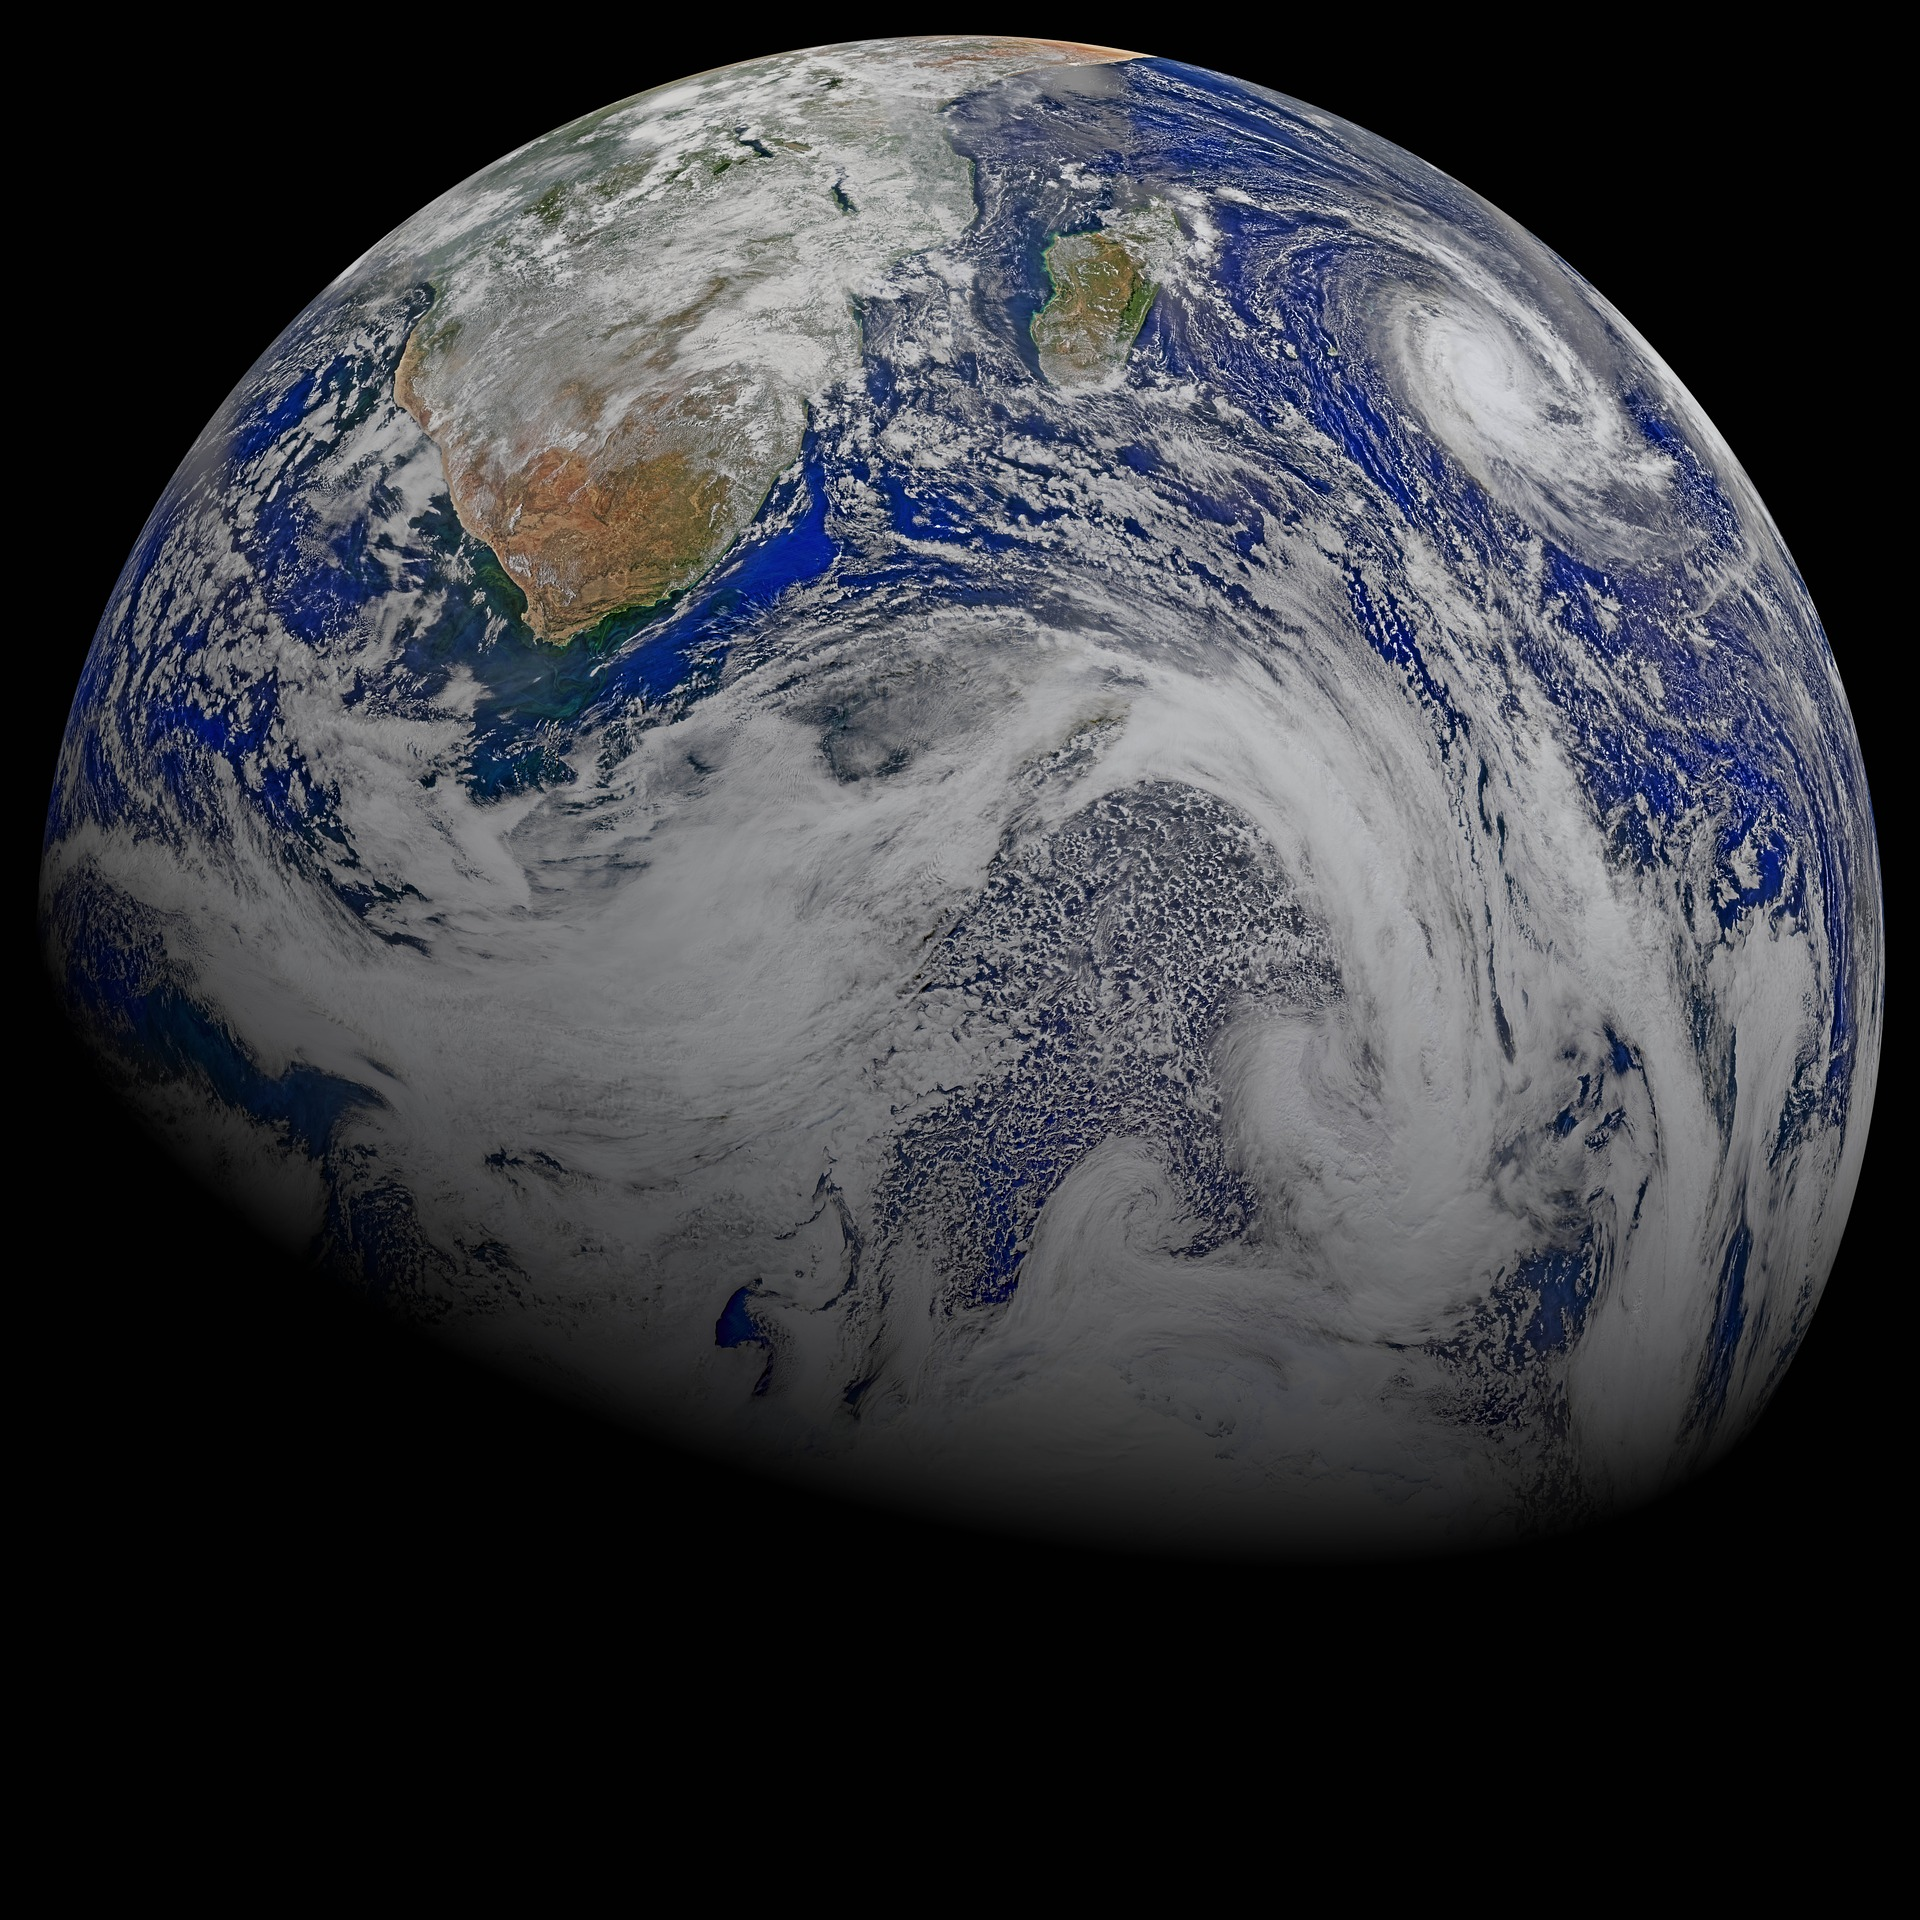 Earth from Space, Earth, Gravity, Life, Lunar, HQ Photo